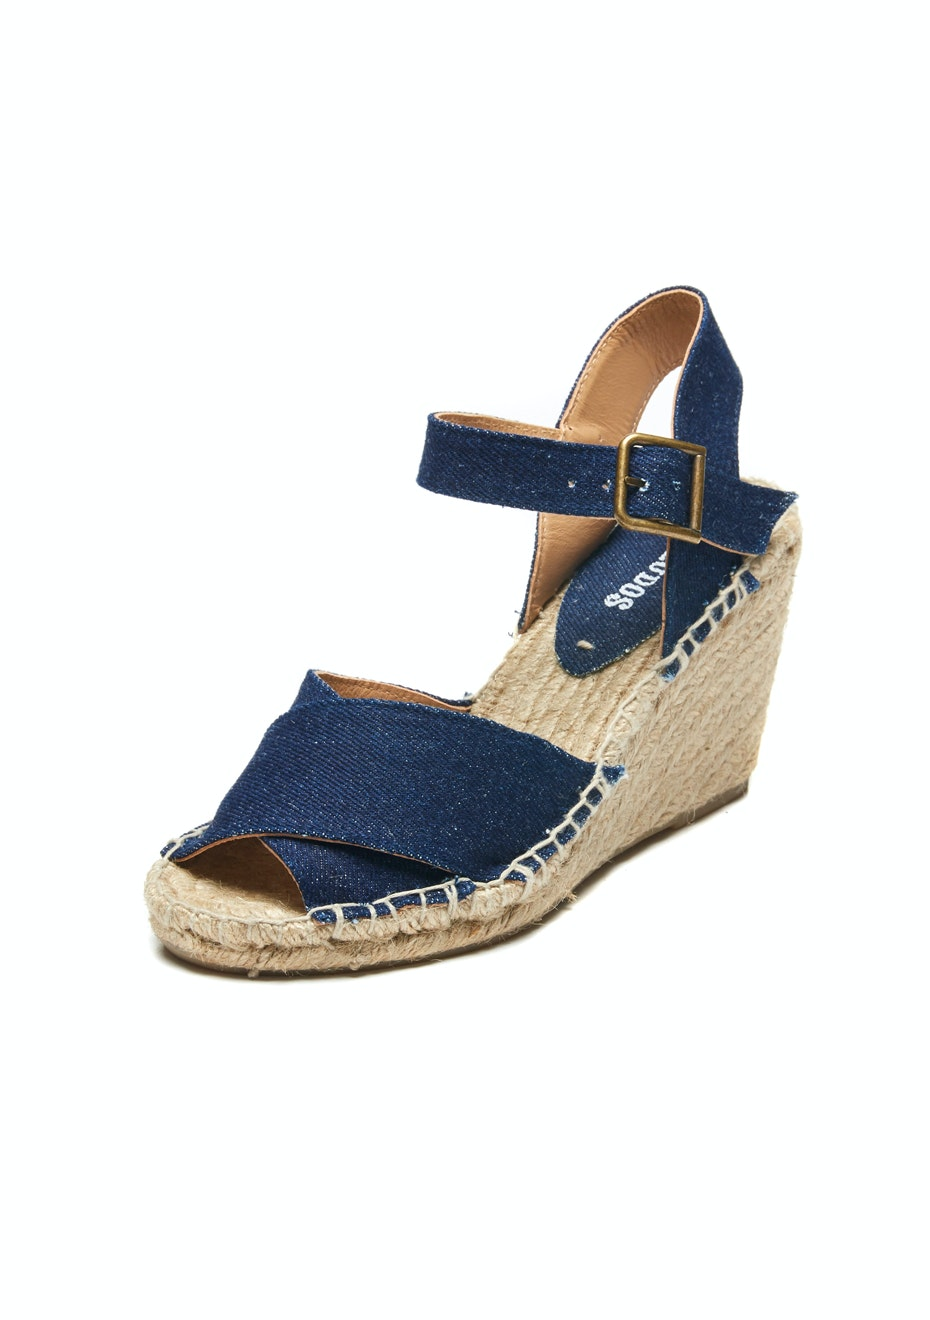 Soludos - Criss-Cross Wedge - Denim